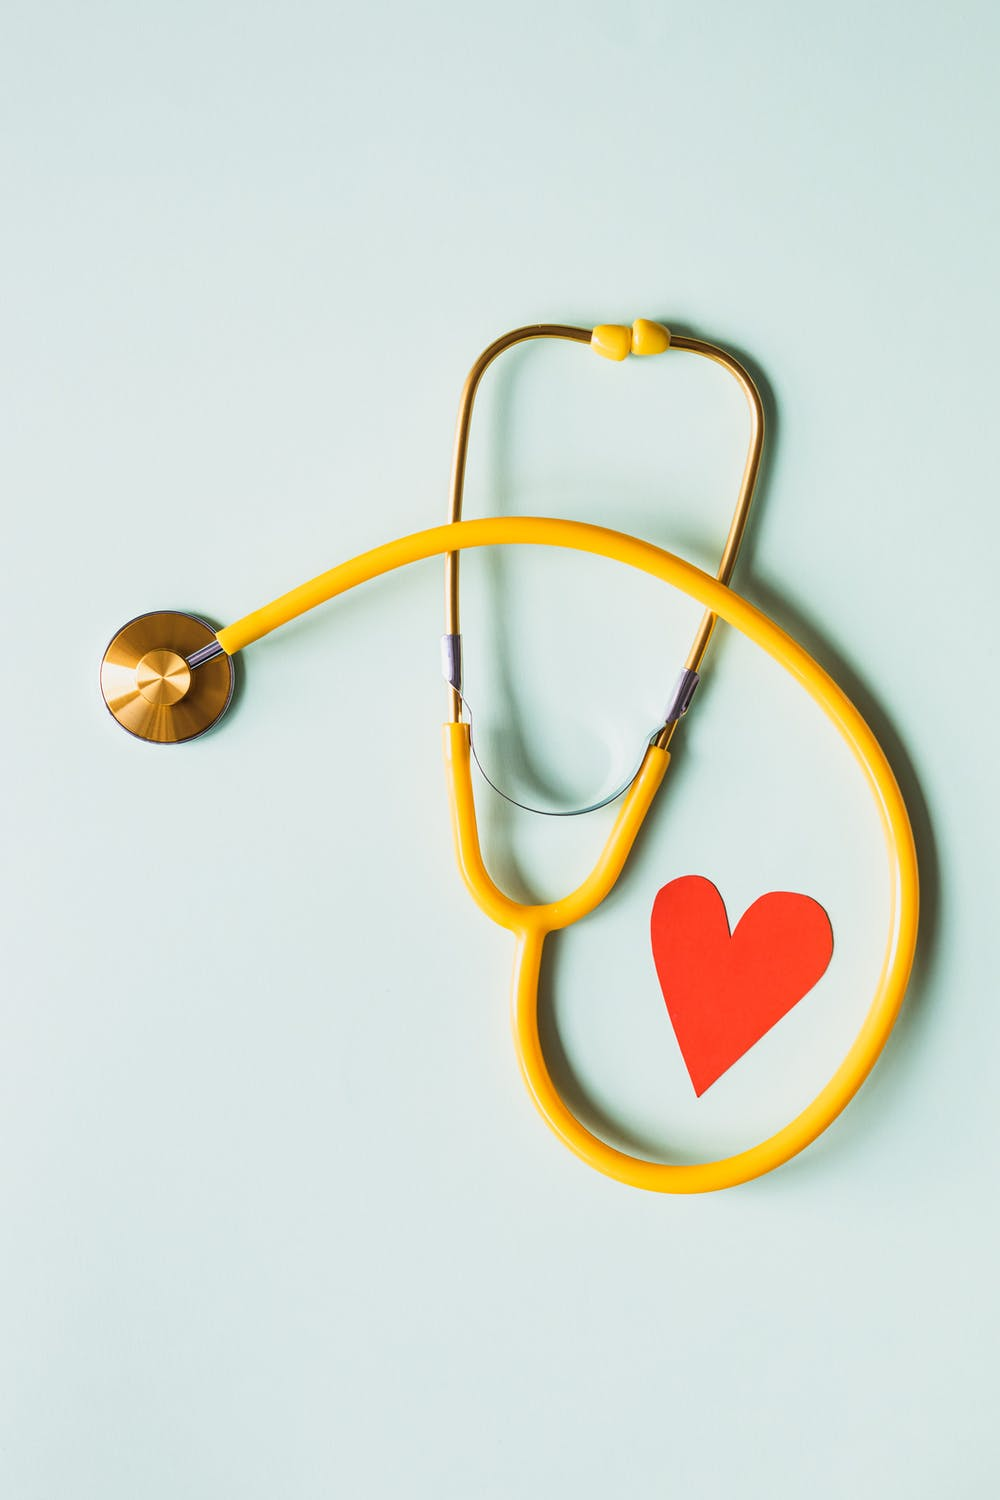 stethescope and heart